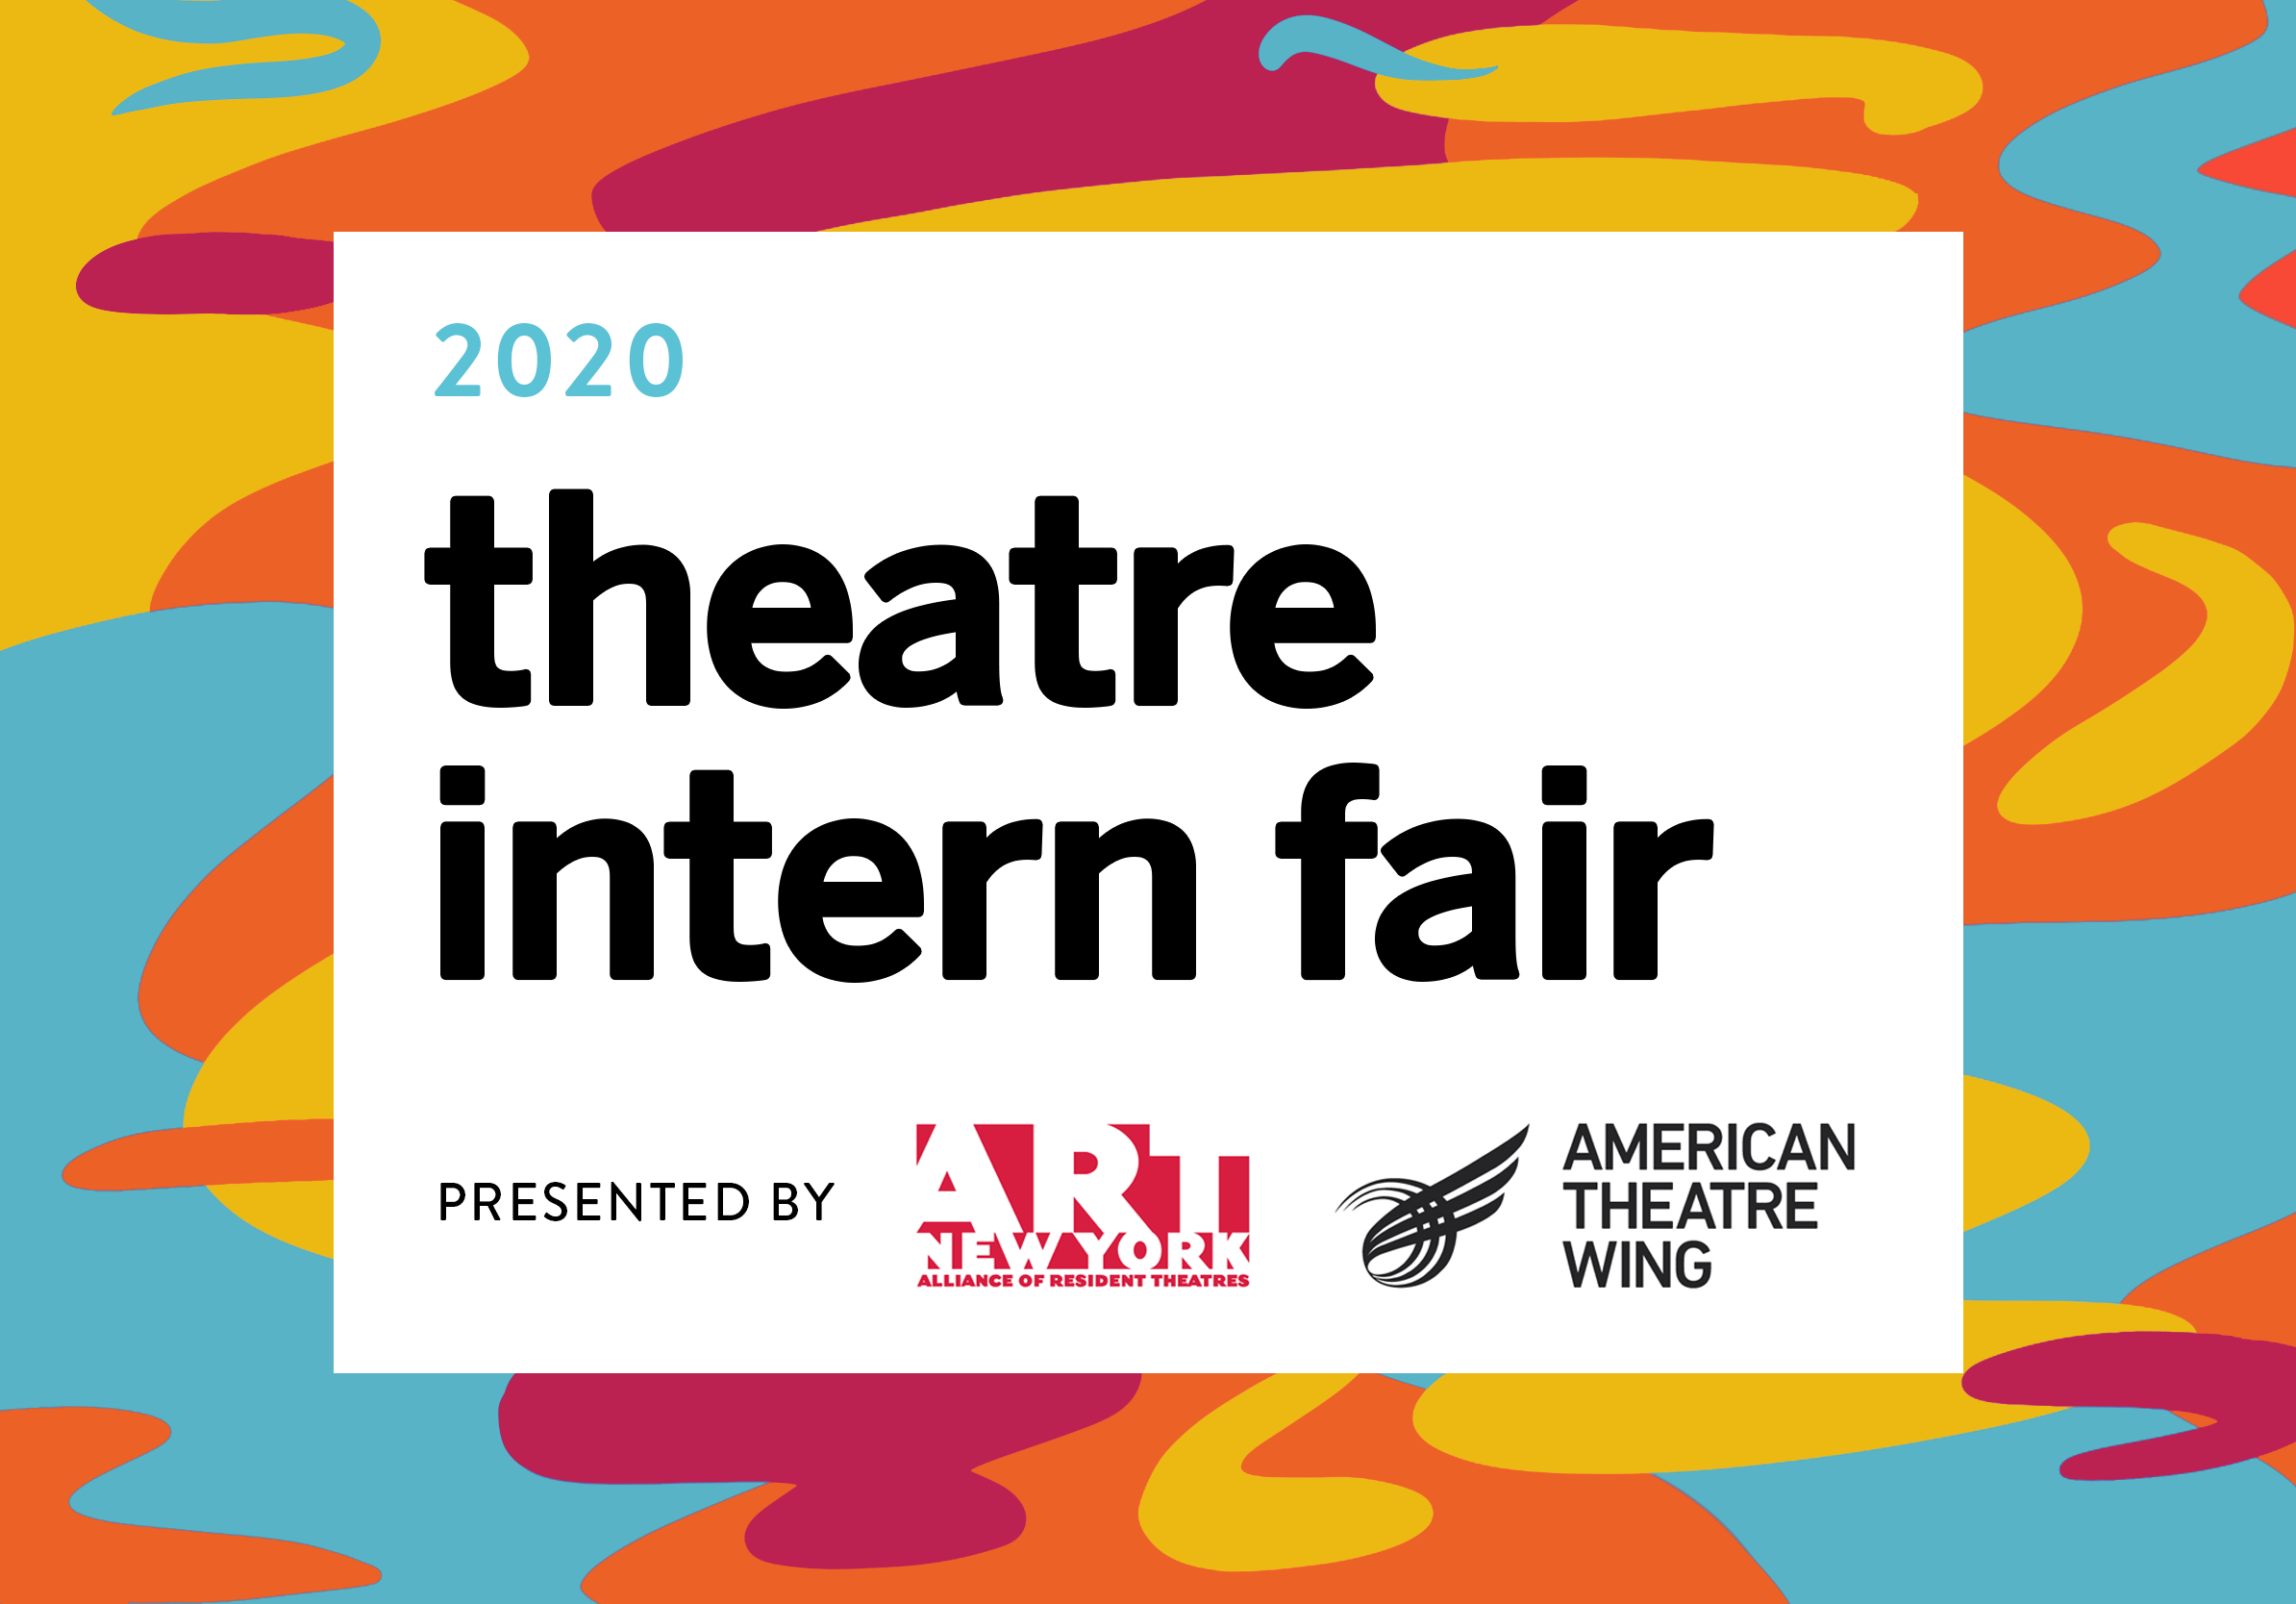 A colorful, vibrant graphic with orange, red, and yellow blobs. On top of the graphic is a box with information about the Intern Fair.